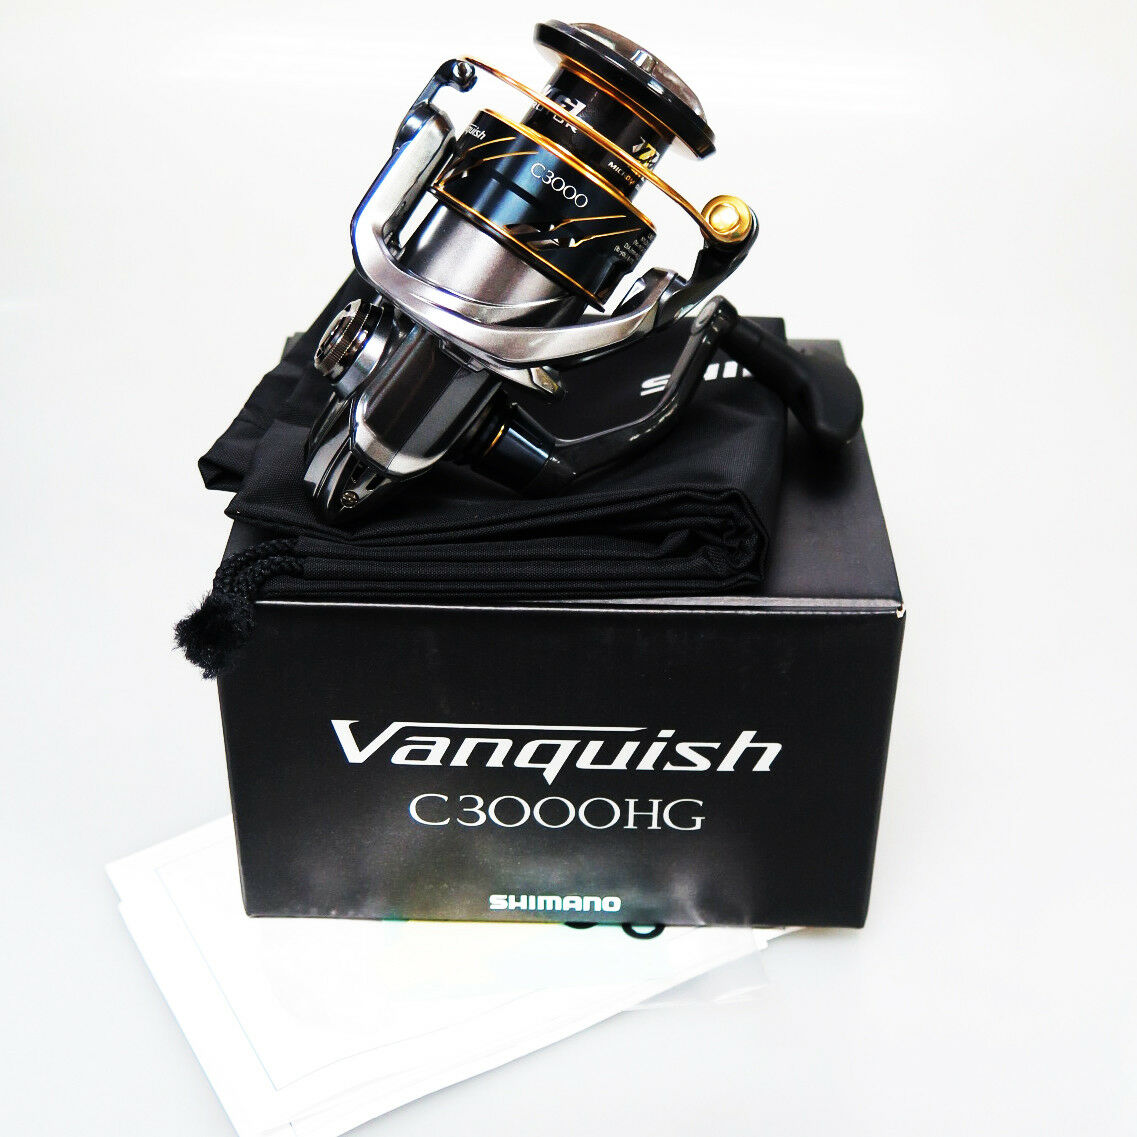 NEW SHIMANO VANQUISH C3000HG16 Spinning Reel SHIP TO US AUS 35 DAY EXPRESS